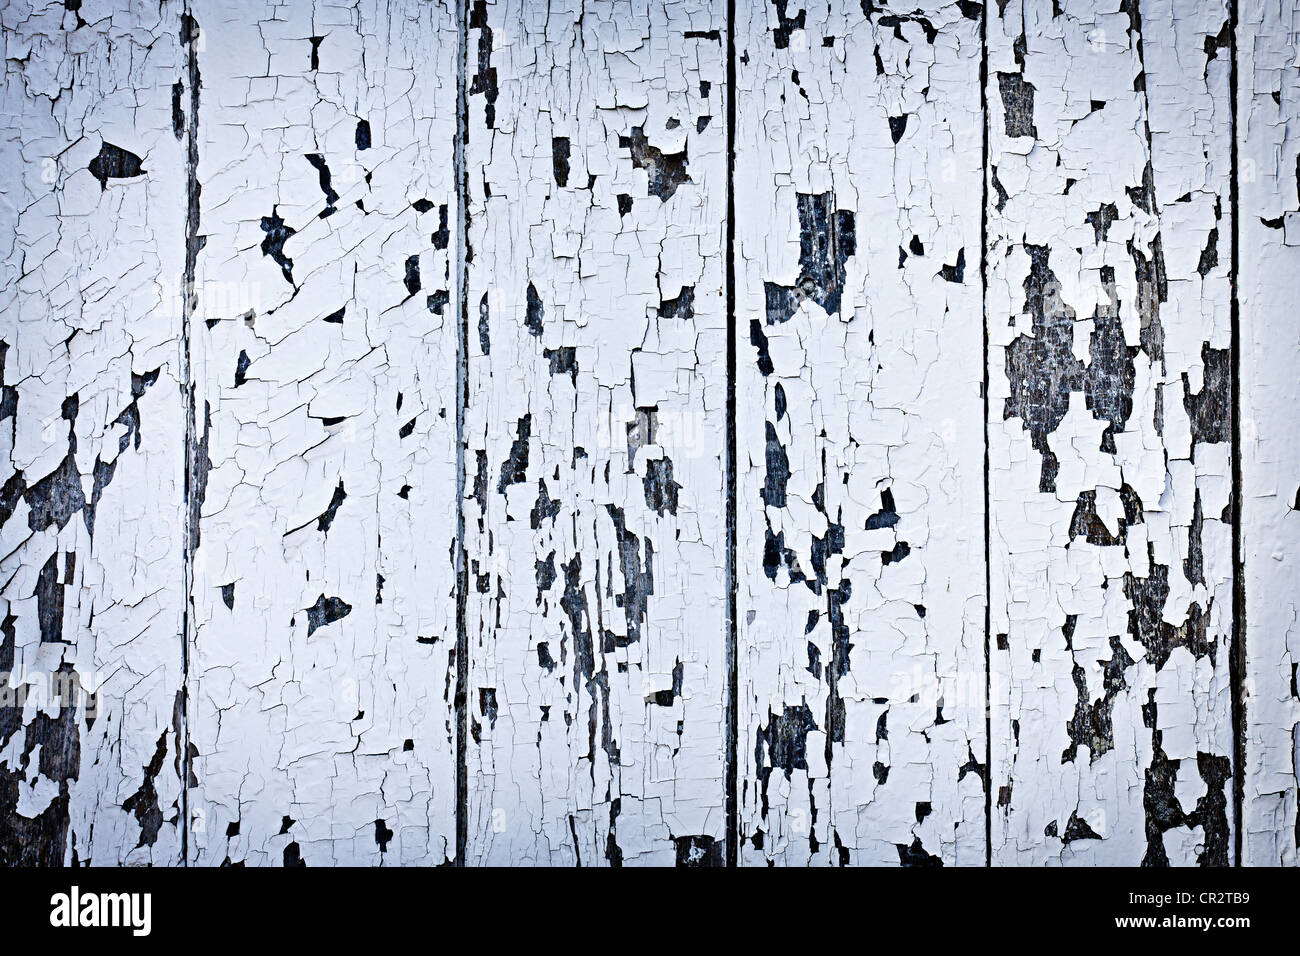 Background of old wood boards with peeling paint - Stock Image